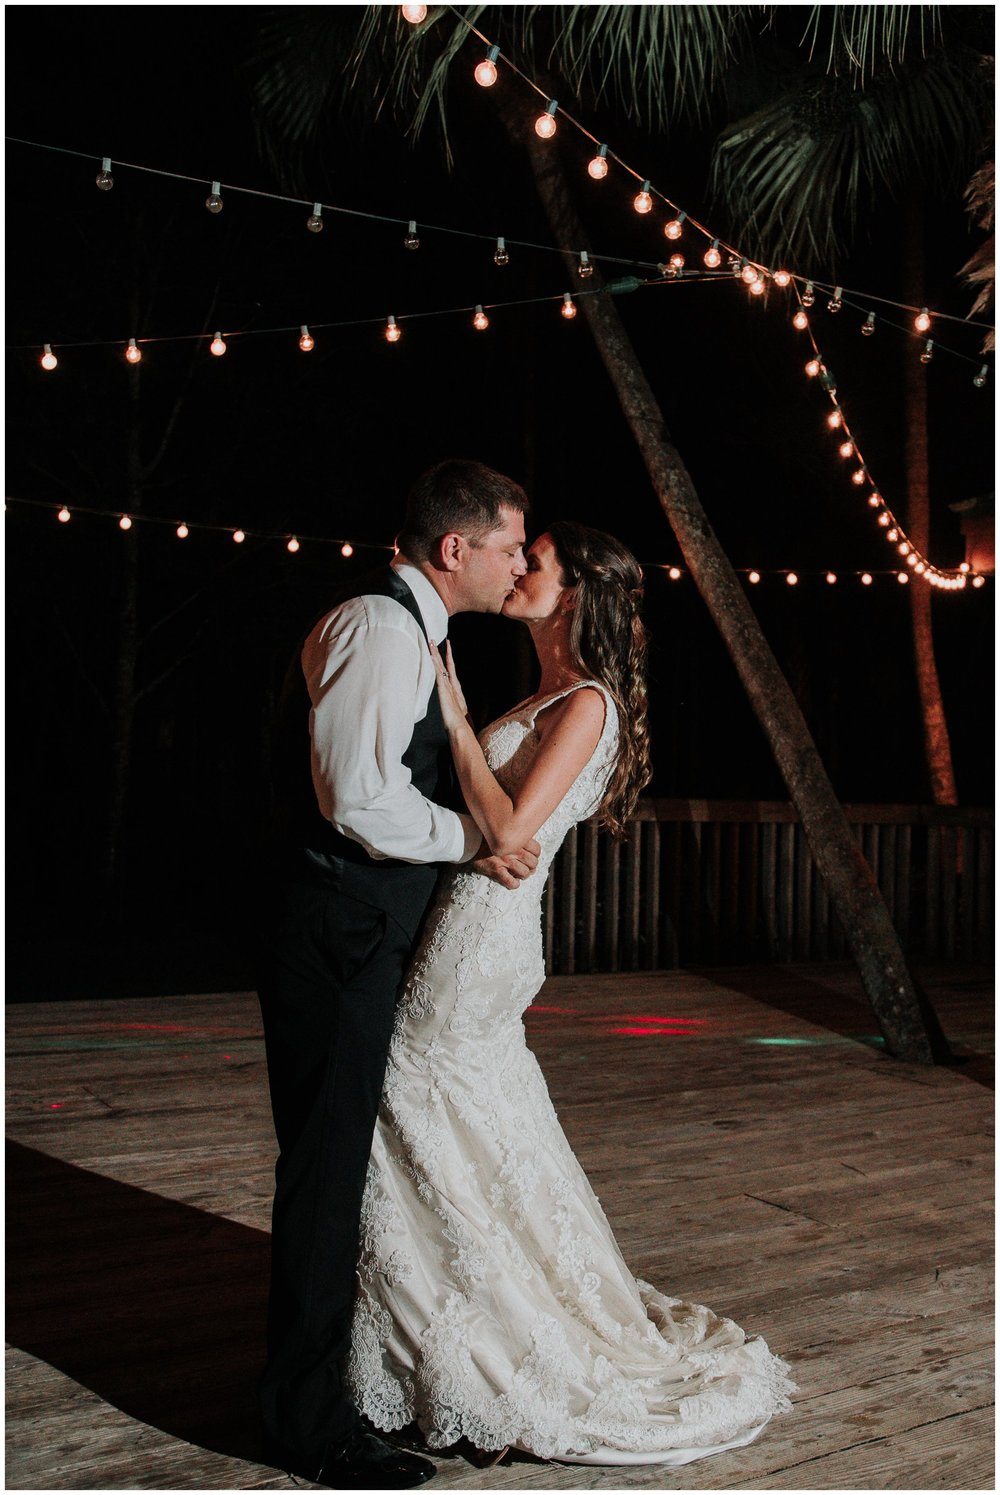 Nicole and Jimmy-BMR Stables Wedding-kimberly smith photography_0048.jpg